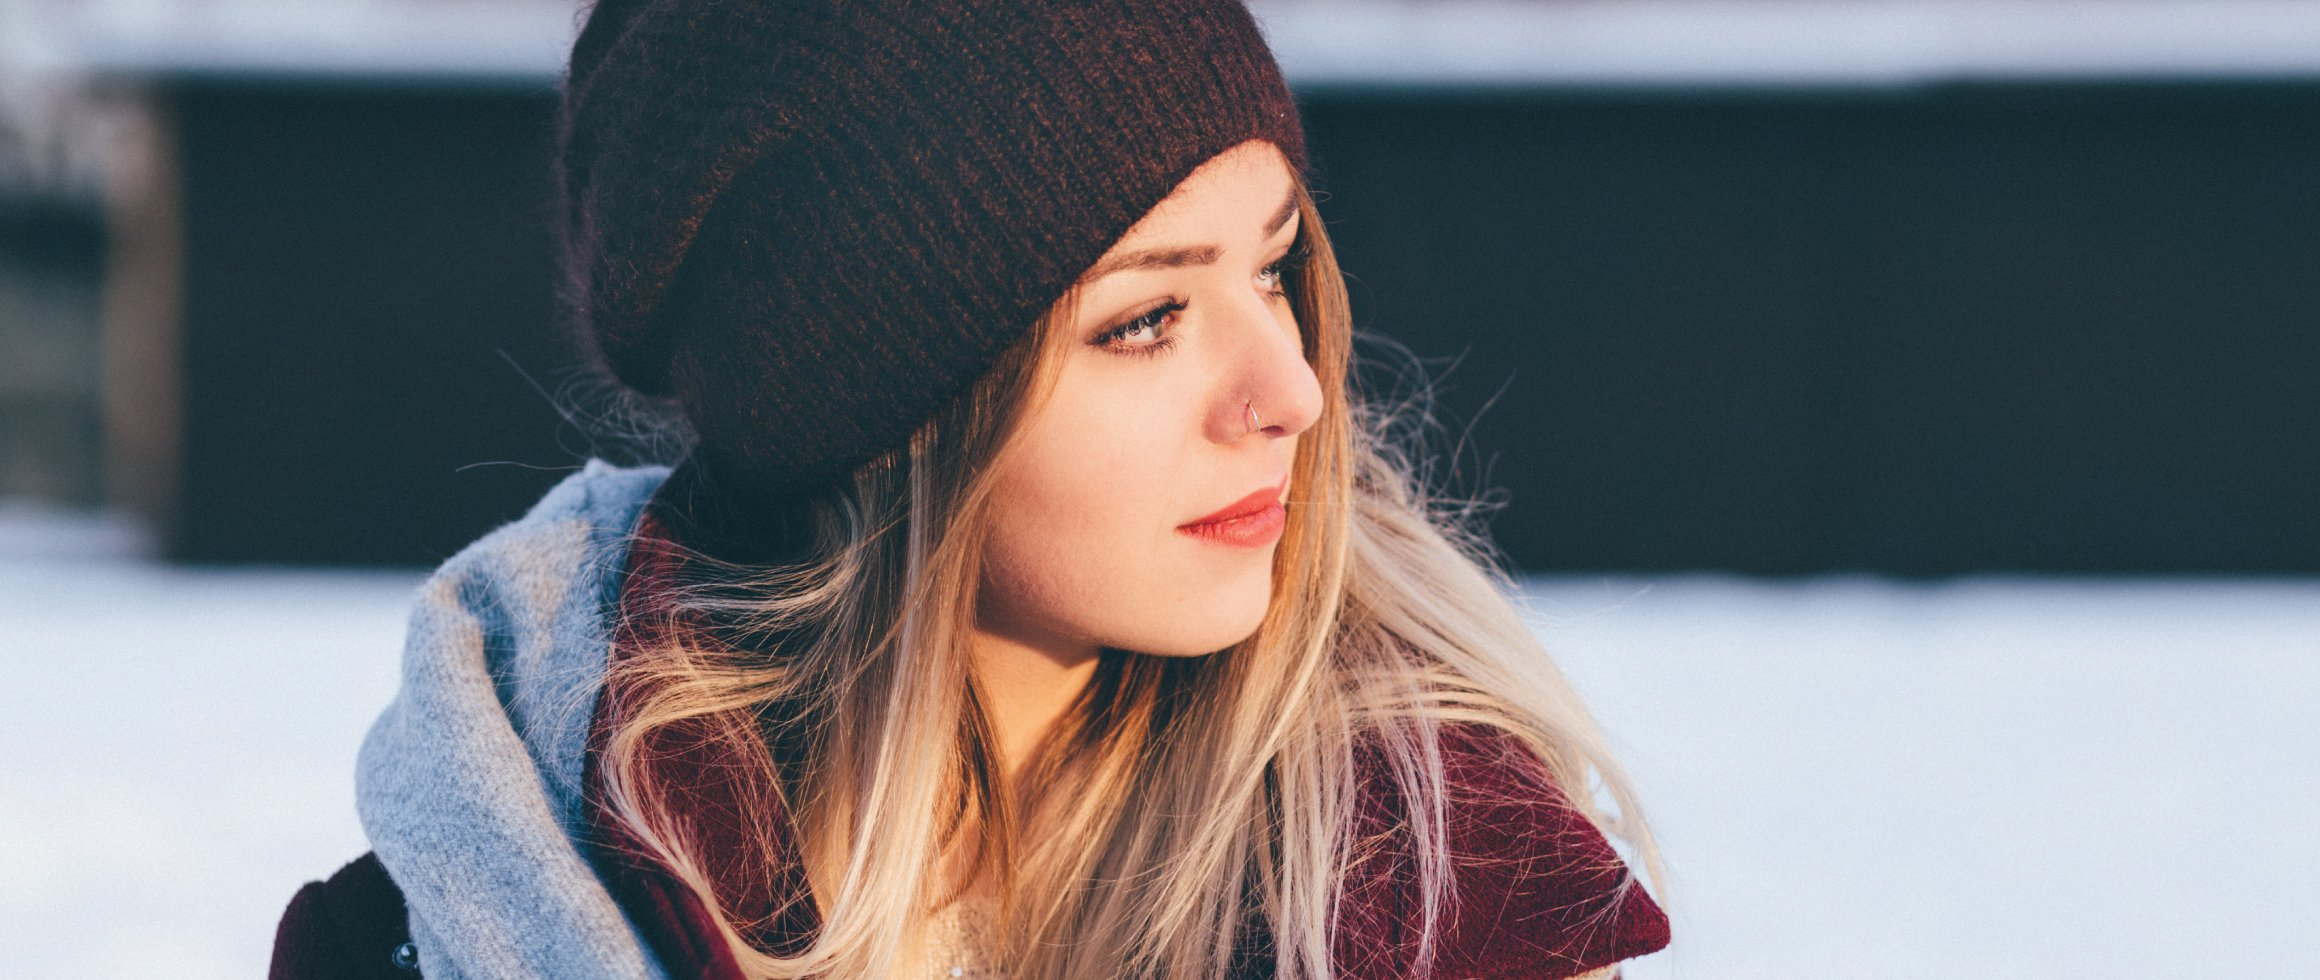 10 Simple Ways to Overcome Loneliness